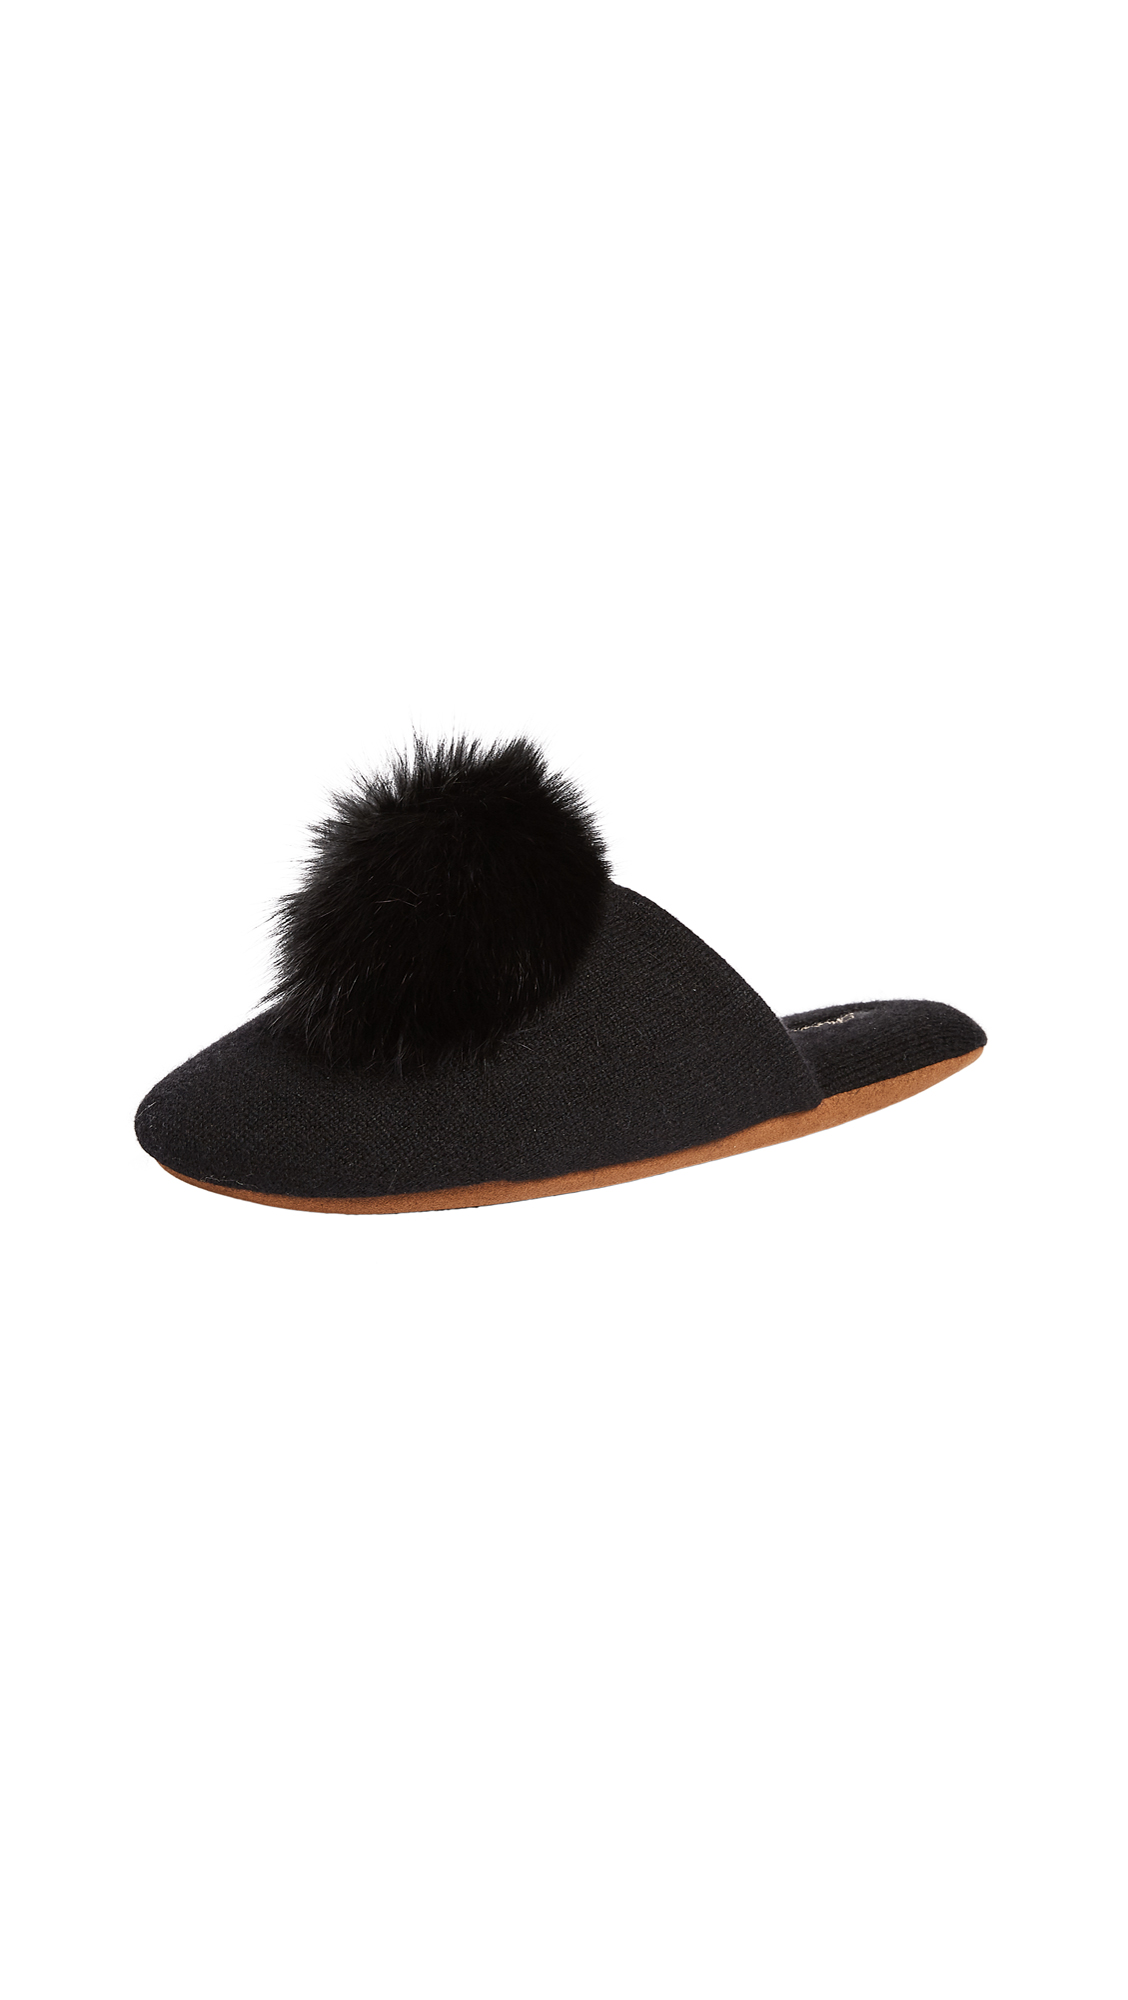 Minnie Rose Fox Pom Pom Slippers - Black